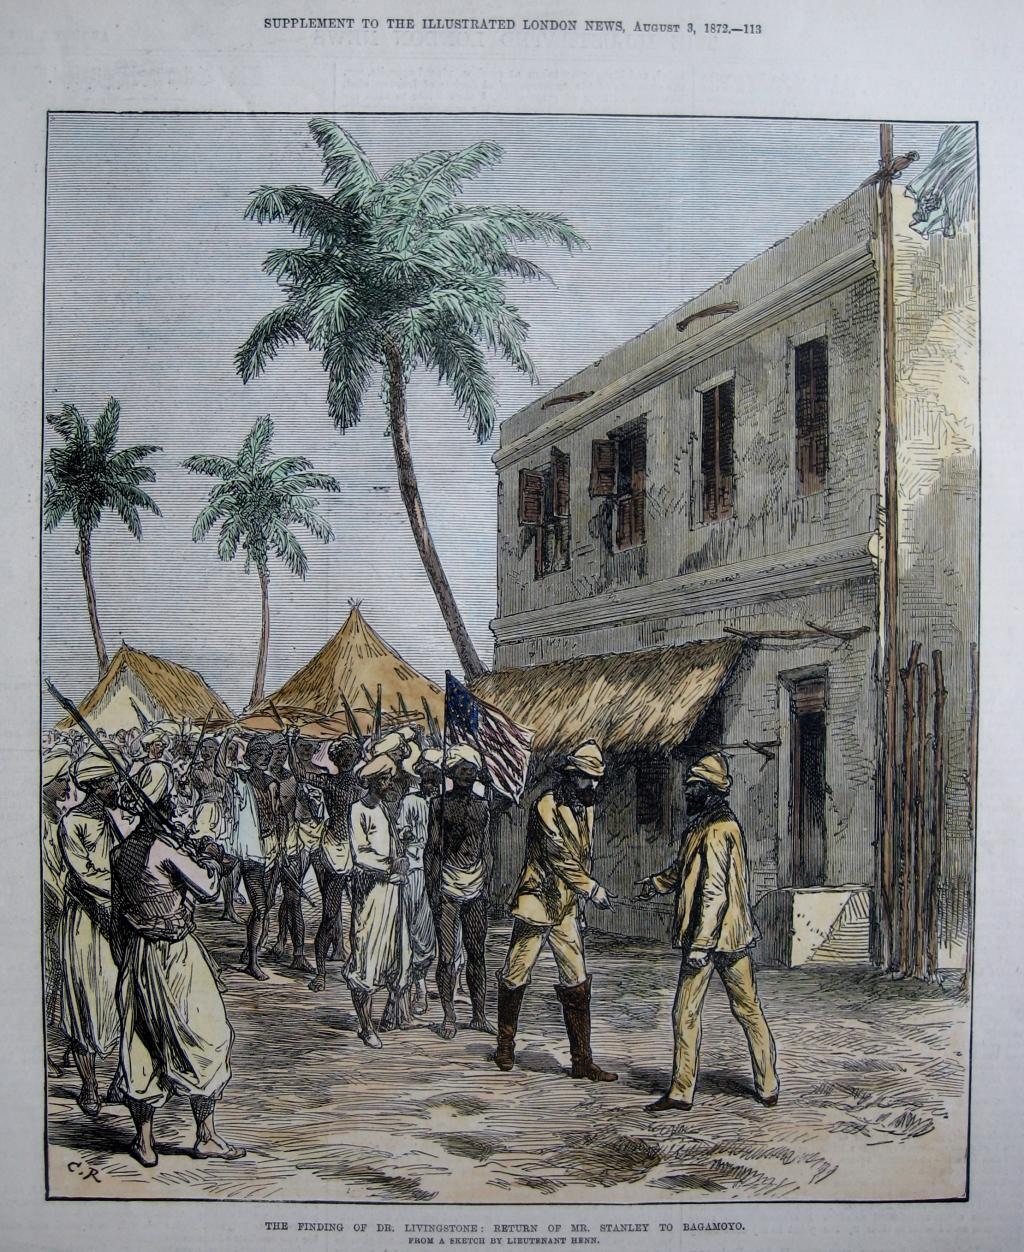 THE FINDING OF LIVINGSTONE C1872